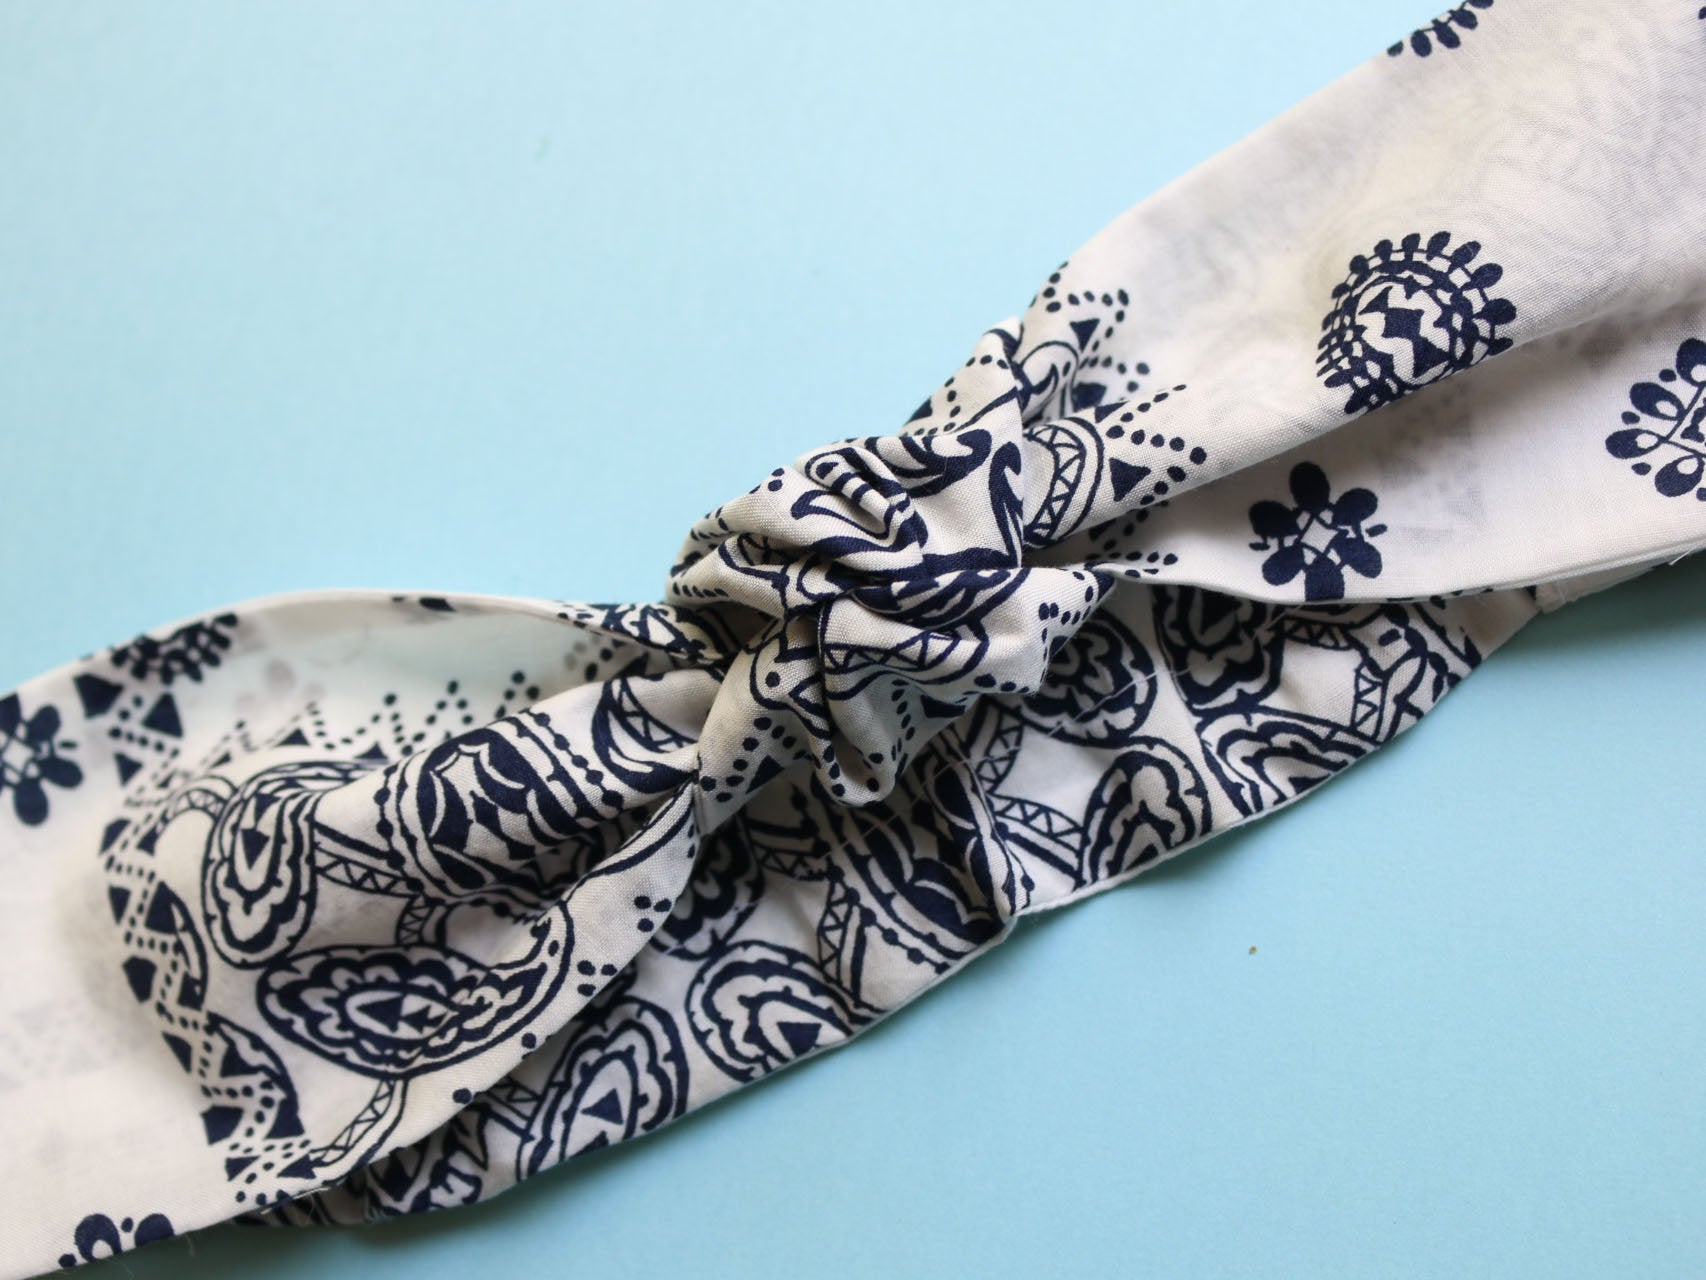 Top Knot headband made of Bandana printed cotton